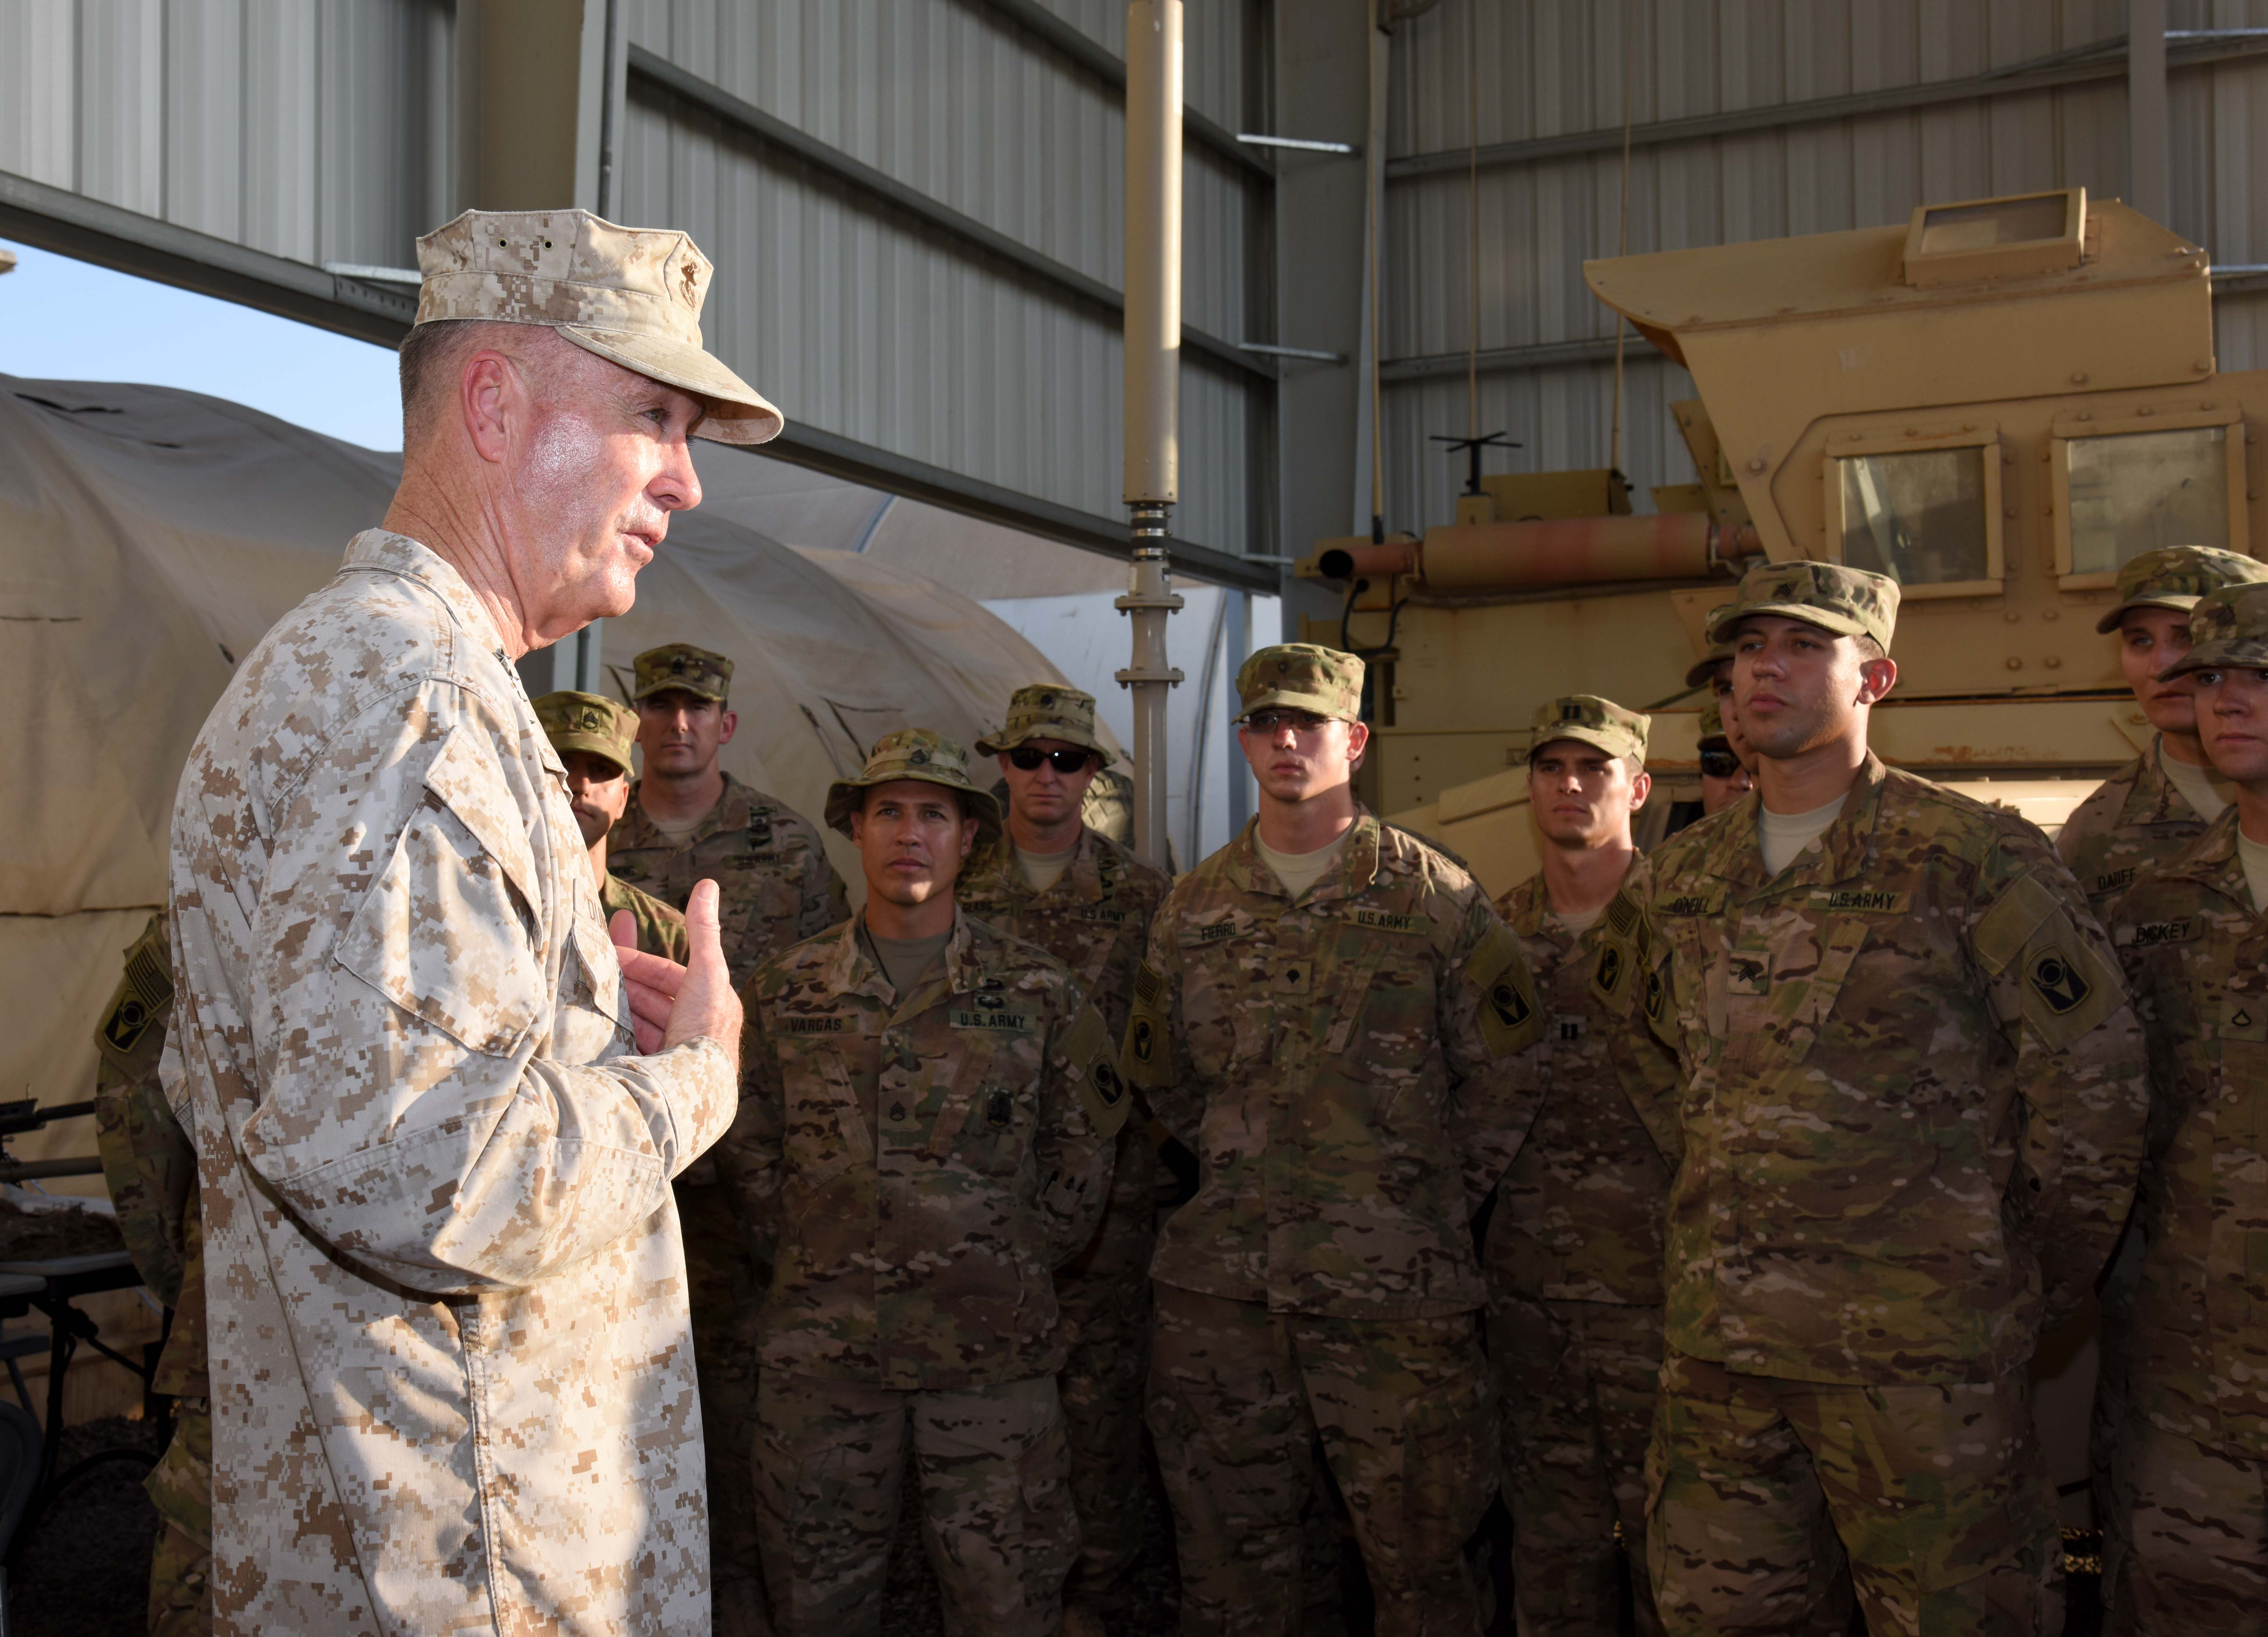 Marine Corps Gen. Joseph Dunford, Chairman of the Joint Chiefs of Staff, speaks to soldiers from 2nd Battalion, 124th Infantry Regiment (Seminole Battalion) during his visit to Camp Lemonnier, Djibouti, Dec. 6, 2015. The Chairman took time to thank the Soldiers, Sailors, Airmen and Marines for their contributions to enabling East African partners to fight violent extremist organizations in the region. (U.S. Air Force photo by Staff Sgt. Victoria Sneed)